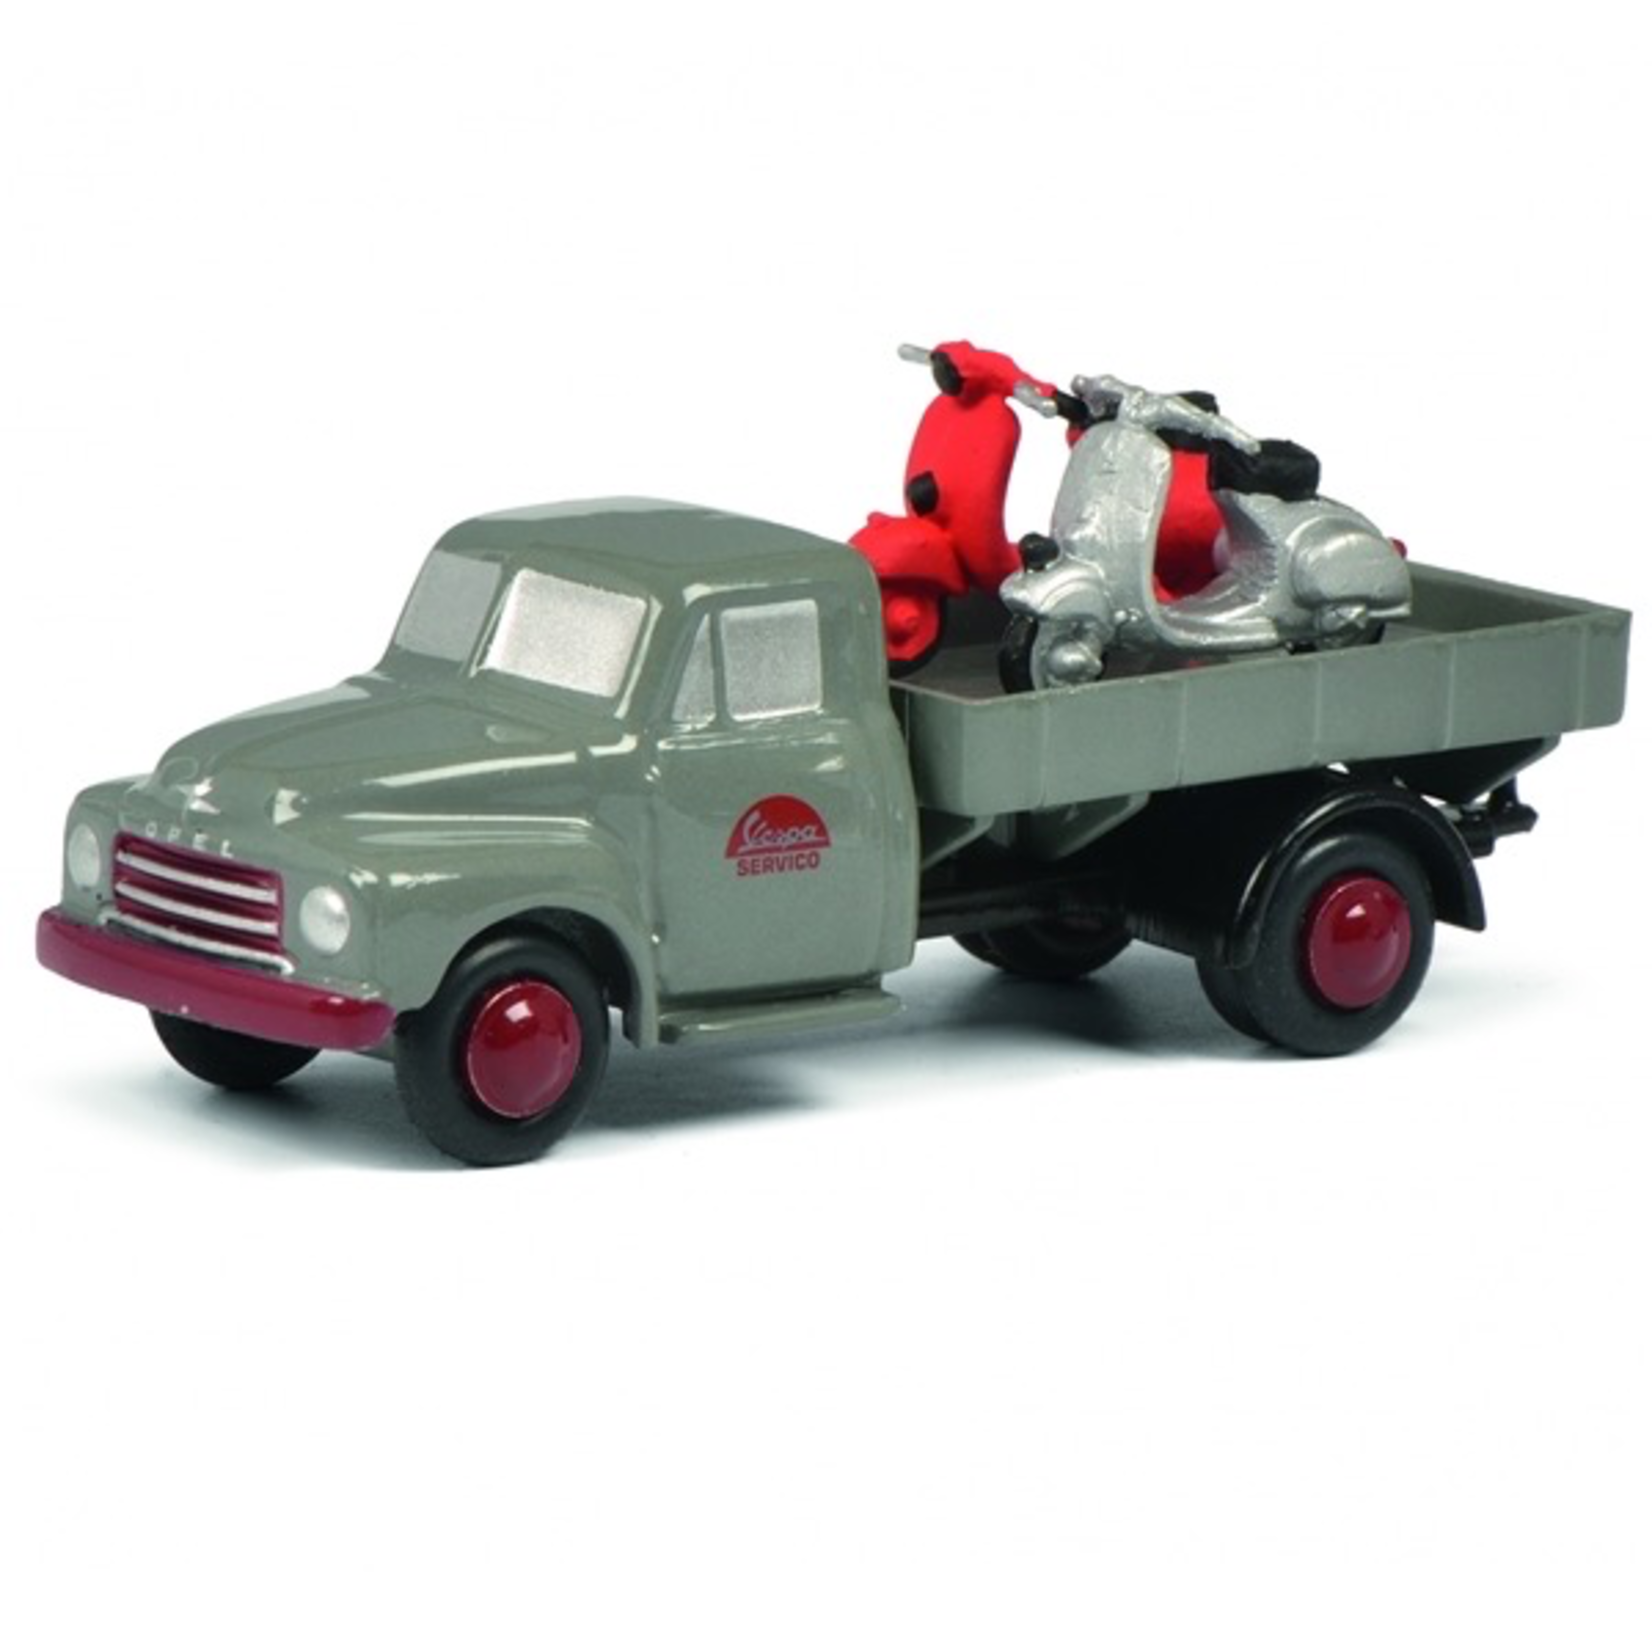 Lifestyle Toy, Schuco Vespa service truck (Limited 500 edition)